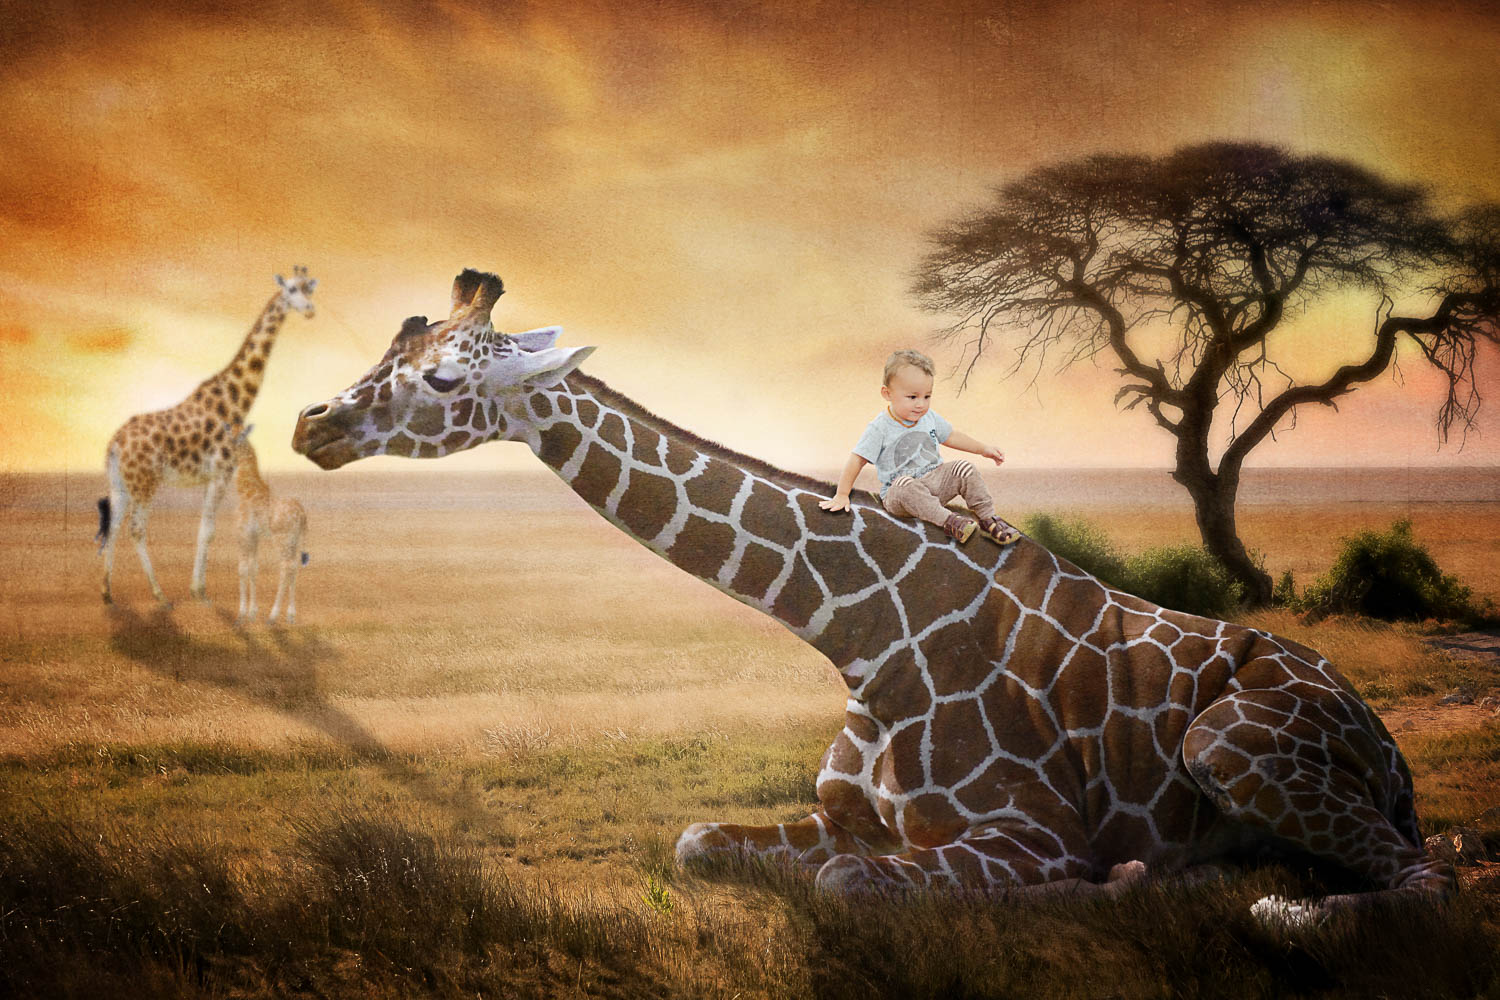 Little boy sliding on giraffe on safari storybook composite